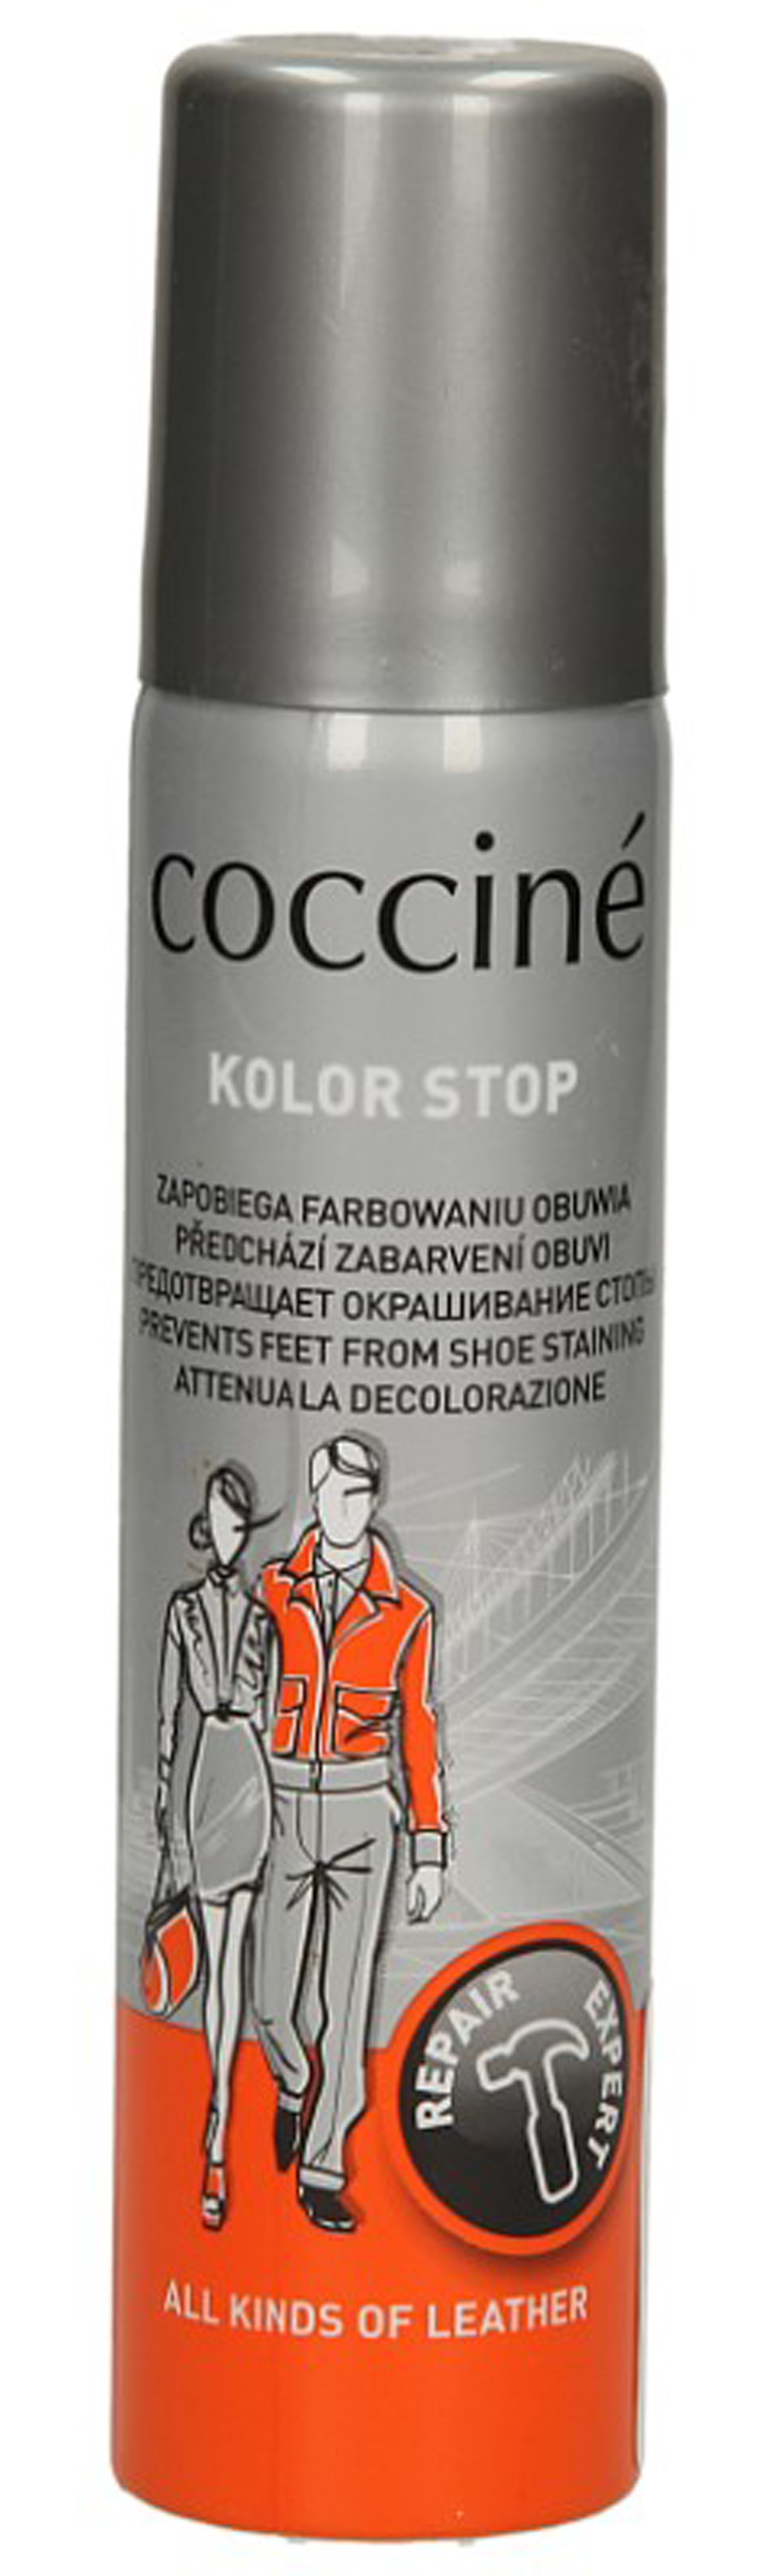 COCCINE KOLOR STOP 50ML producent Coccine